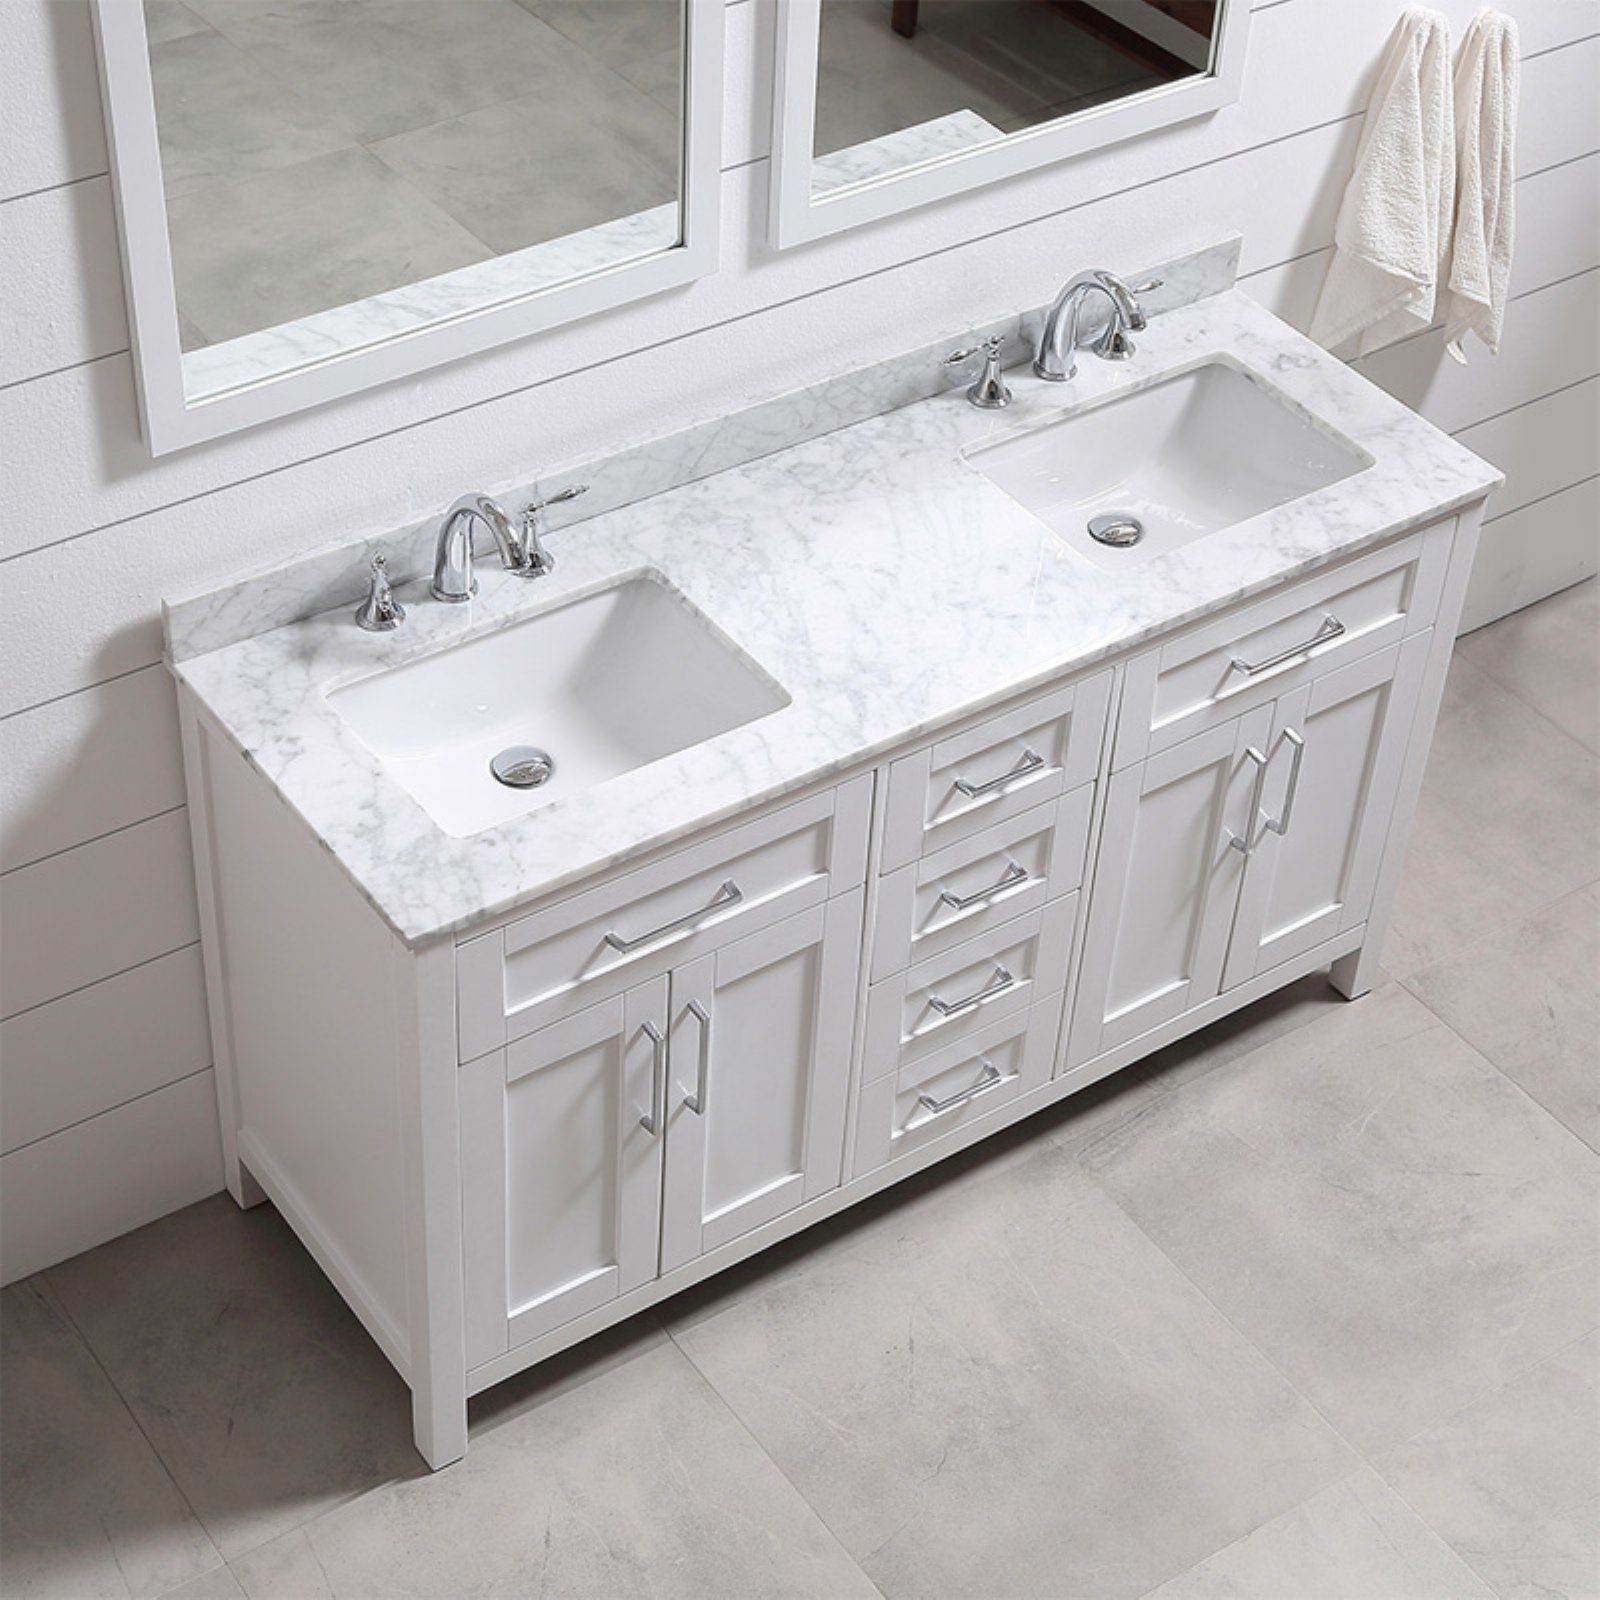 Ove Decors 60 In Double Sink Bathroom Vanity Bathroom Sink